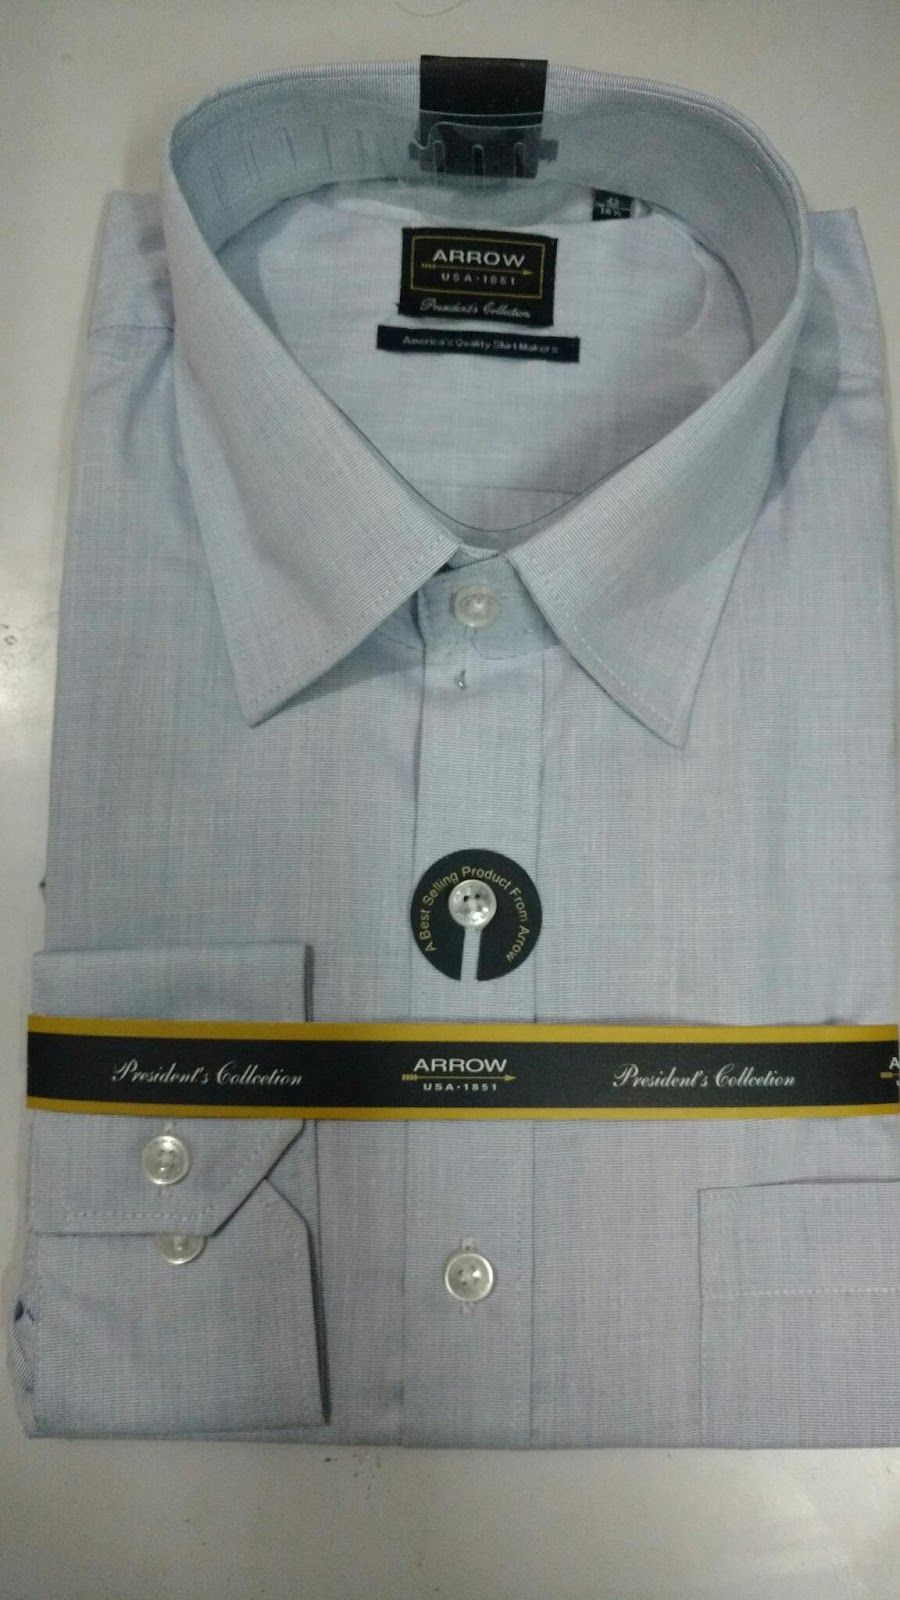 Arrow Original Light Blue Shirt, MRP- Rs 2299 | Branded Products For Sale Call / Whatsapp @ +919560214267.